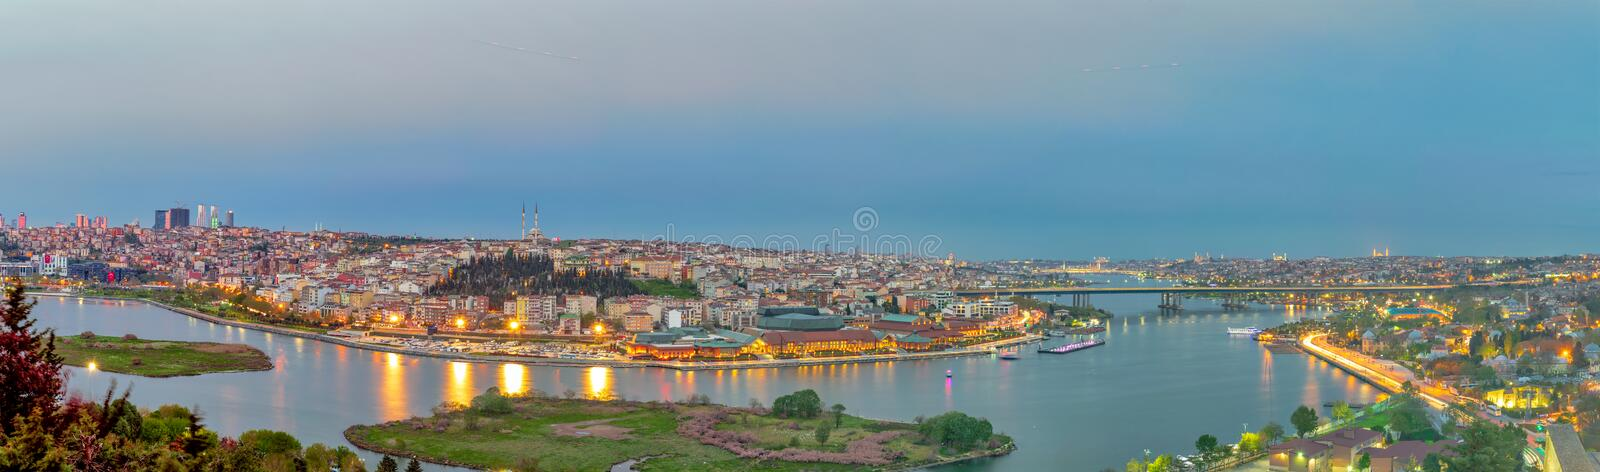 Istanbul city view from Pierre Loti Teleferik station overlooking Golden Horn at sunset, Eyup District, Istanbul, Turkey royalty free stock photography